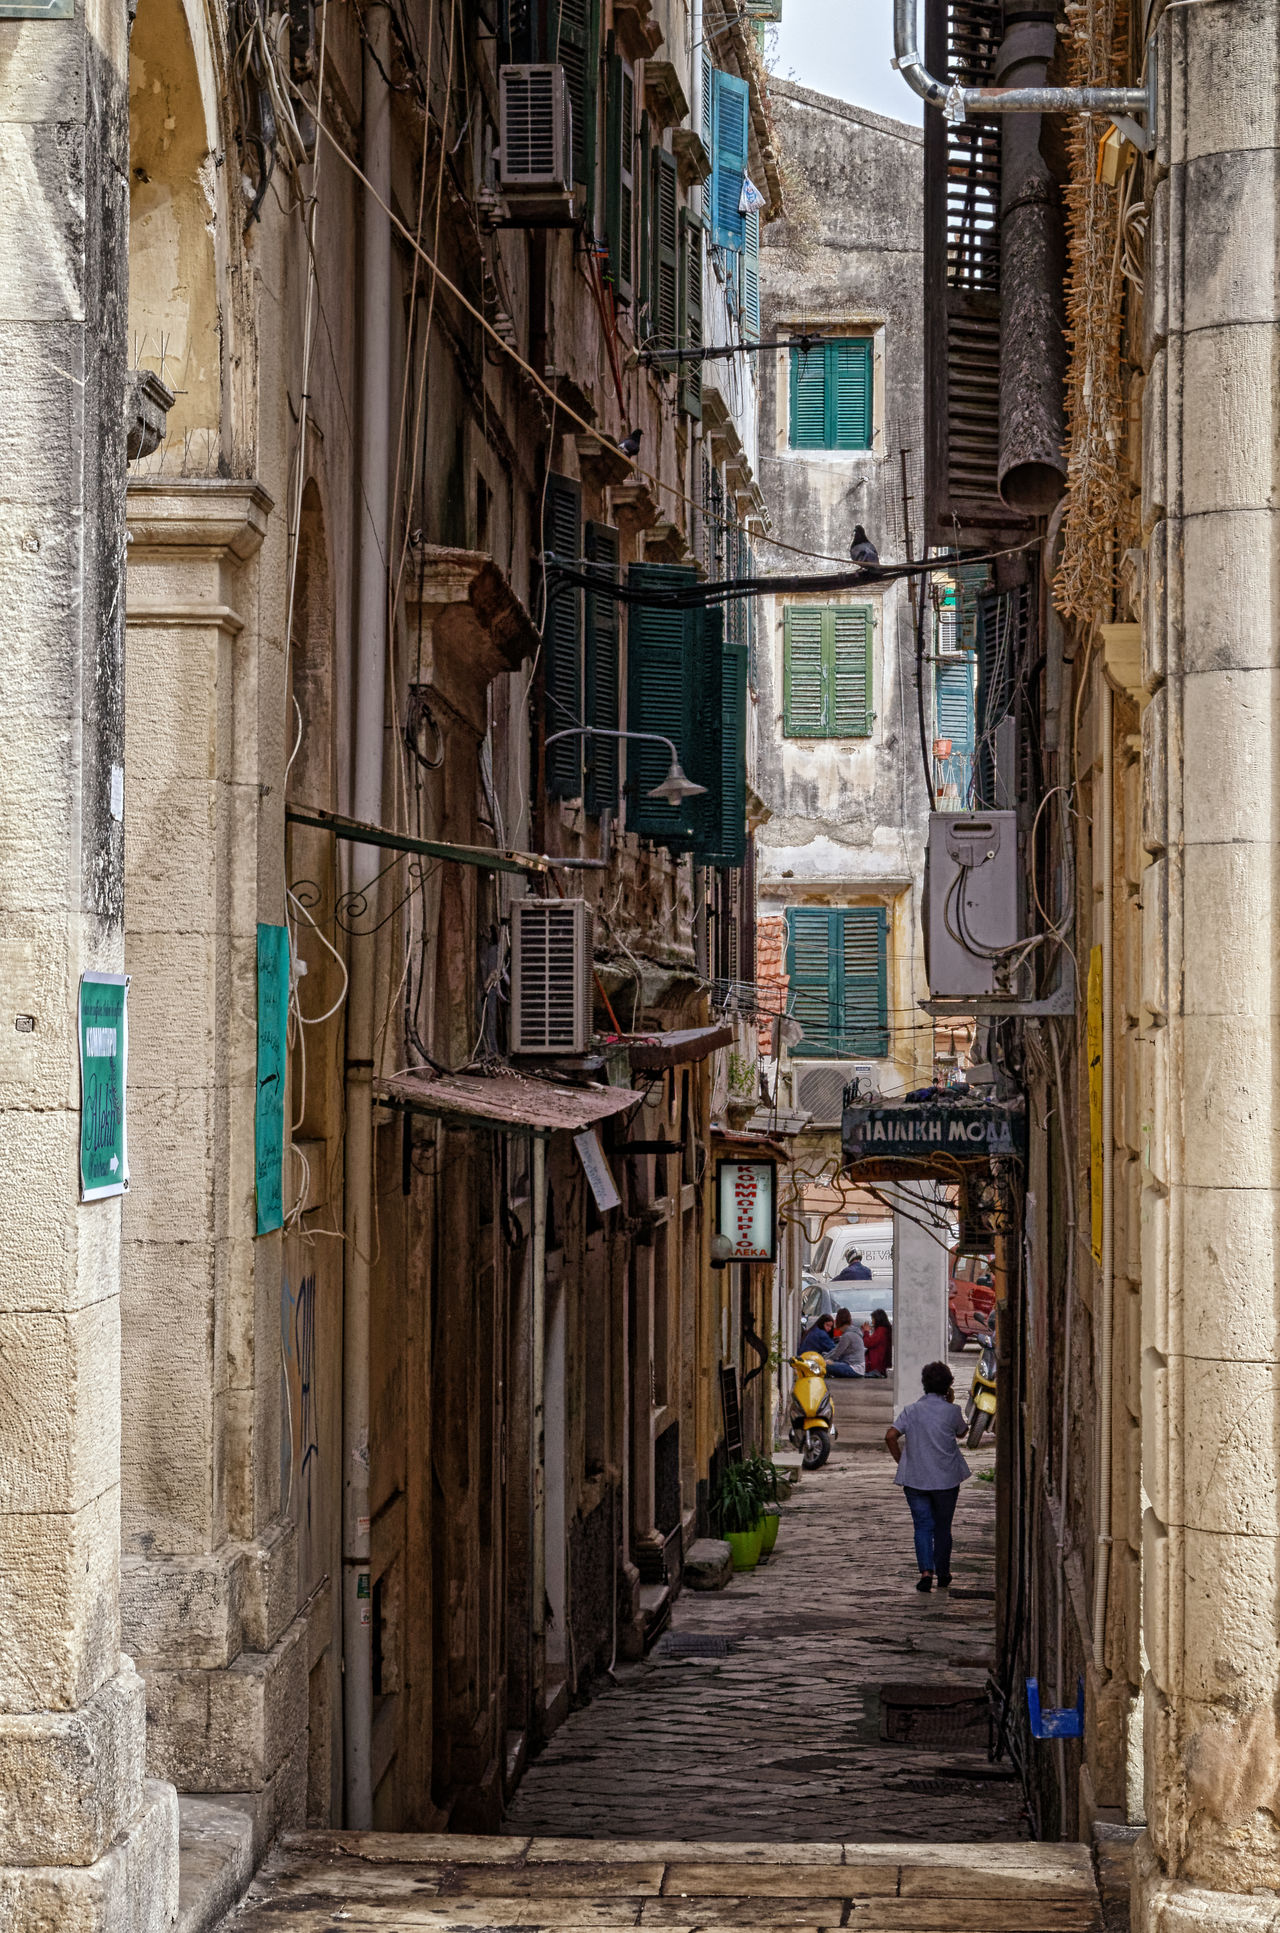 Venetian Alley Alley Architecture Building Exterior Built Structure City Day One Person Outdoors People Real People Residential Building Walking